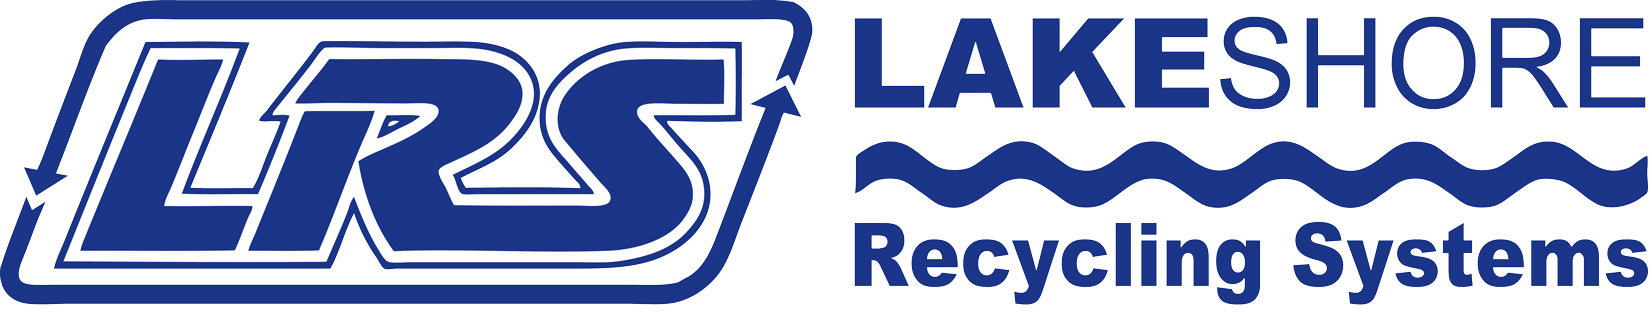 Lakeshore_Recycling_Systems